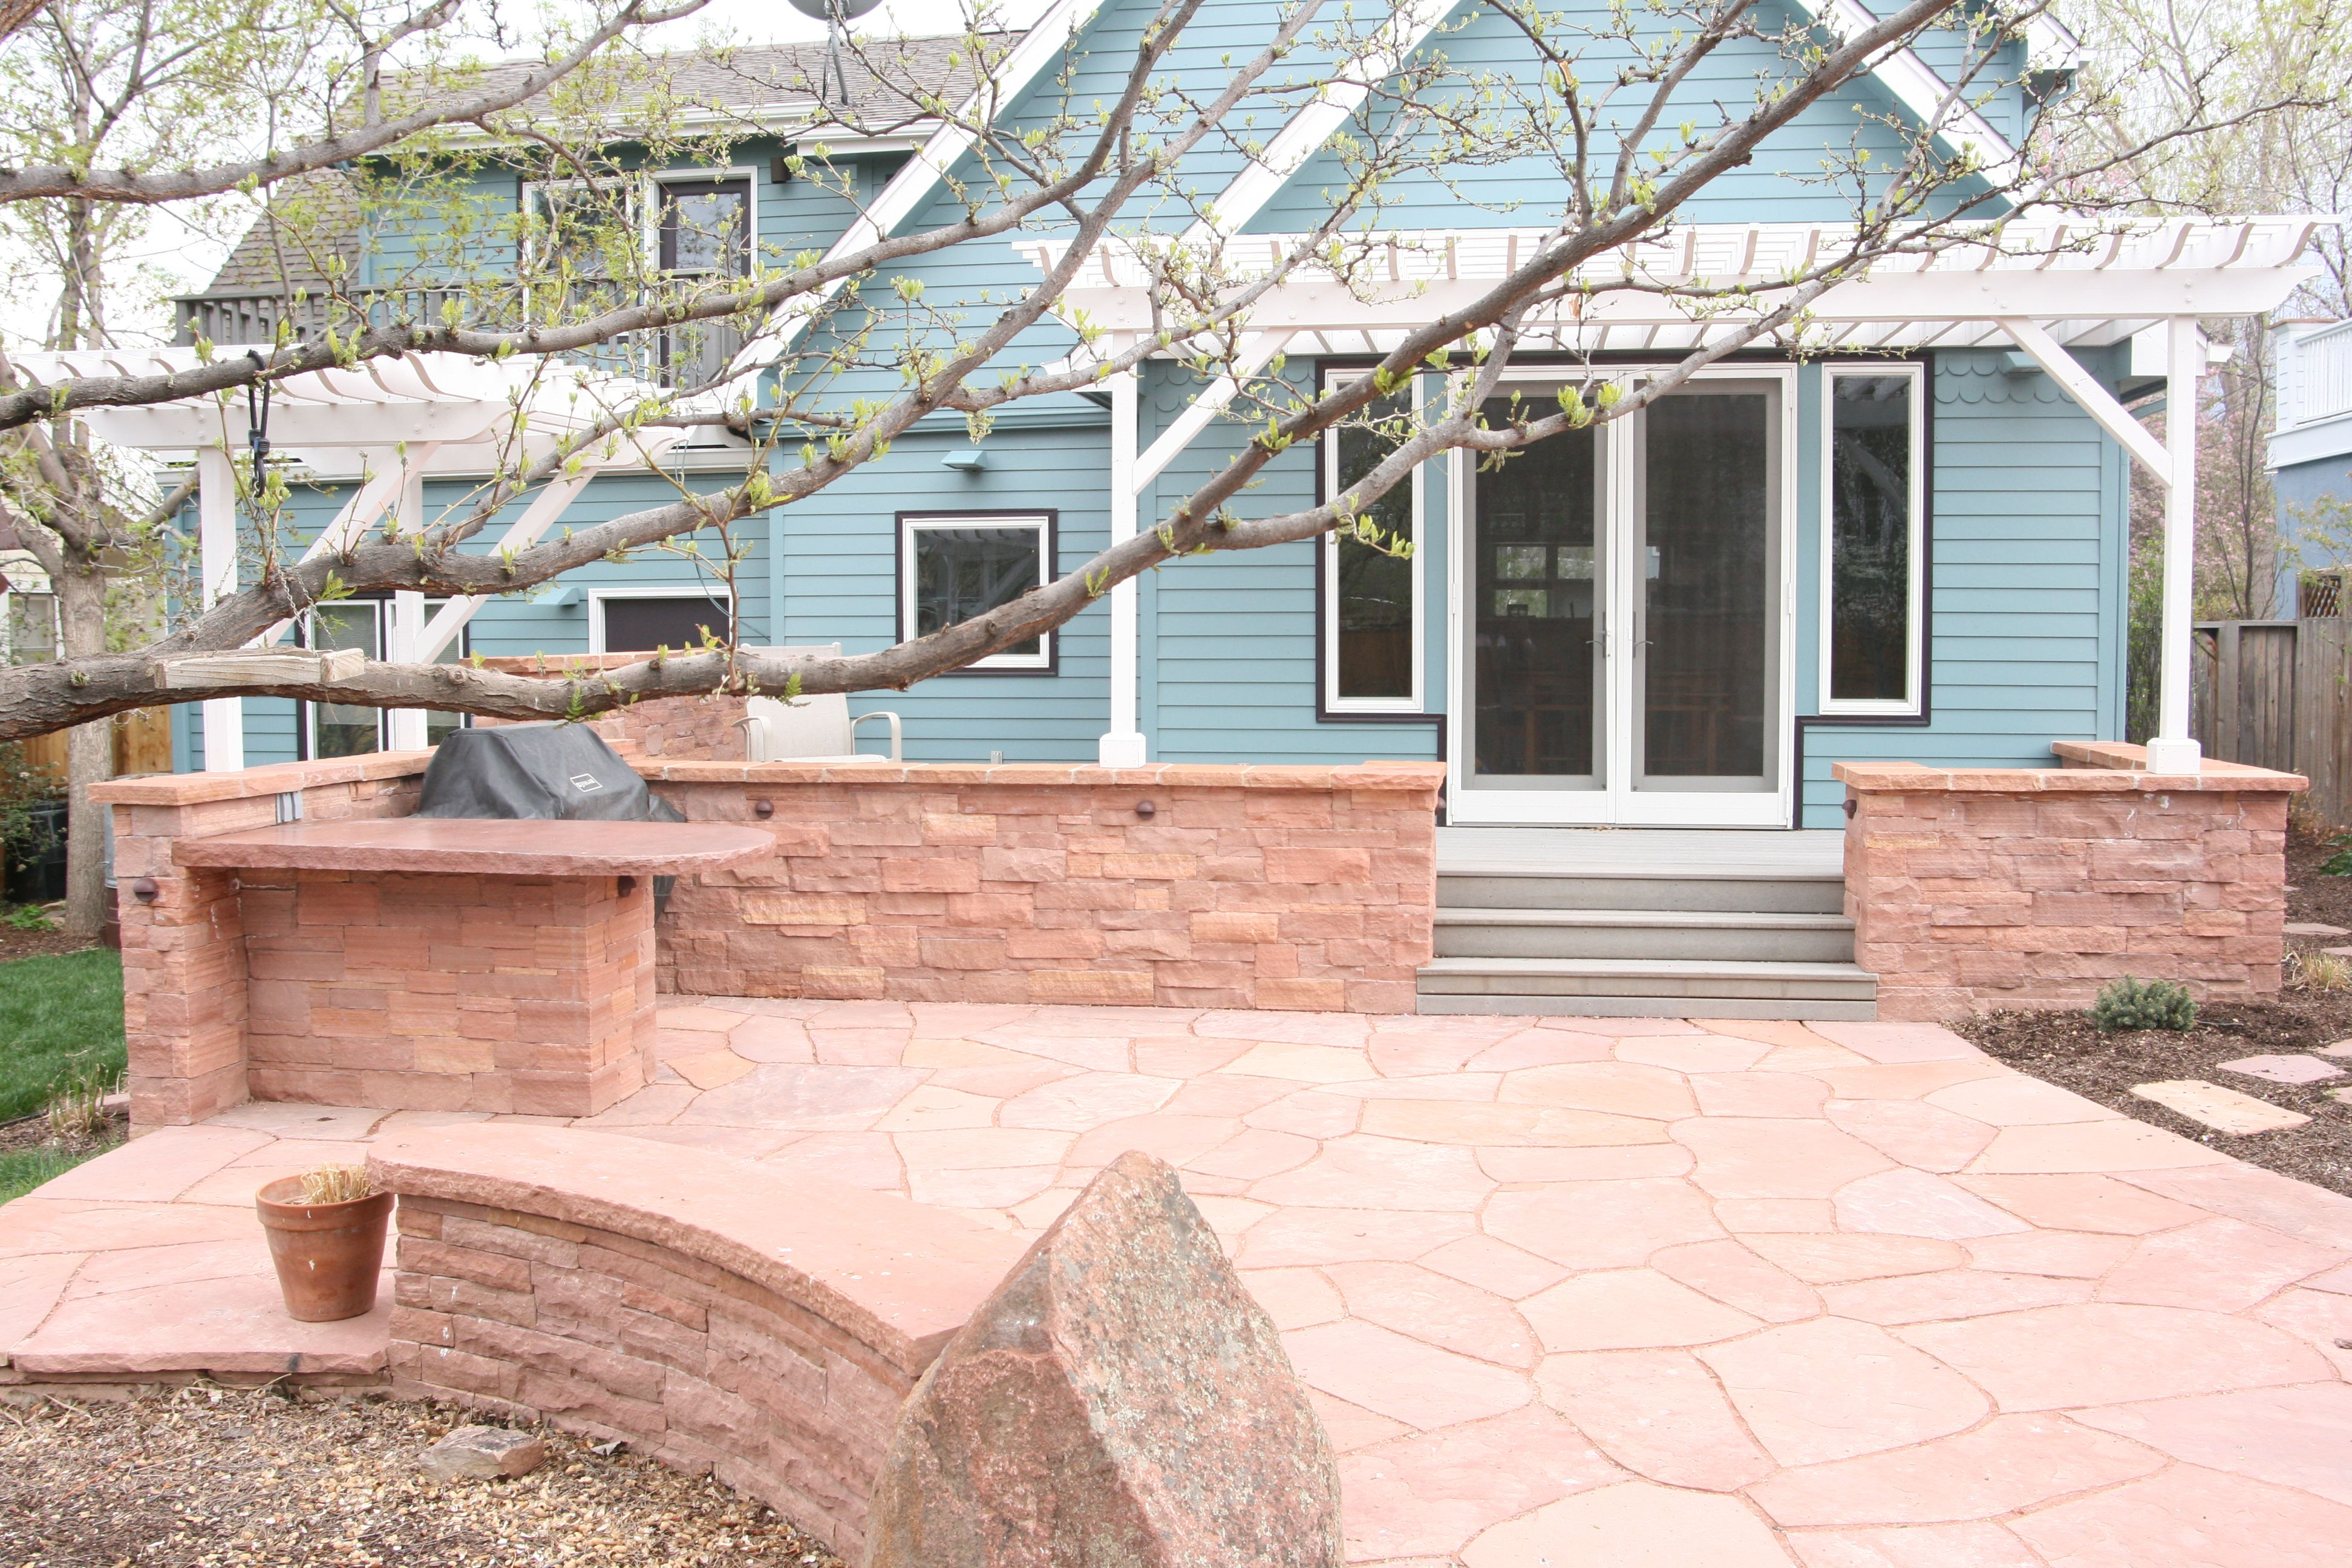 Rose sandstone patio with built-in seat walls and lighting to define the patio area and provide a base for the attached pergola. By Native Edge Landscapes in Boulder, Colorado.